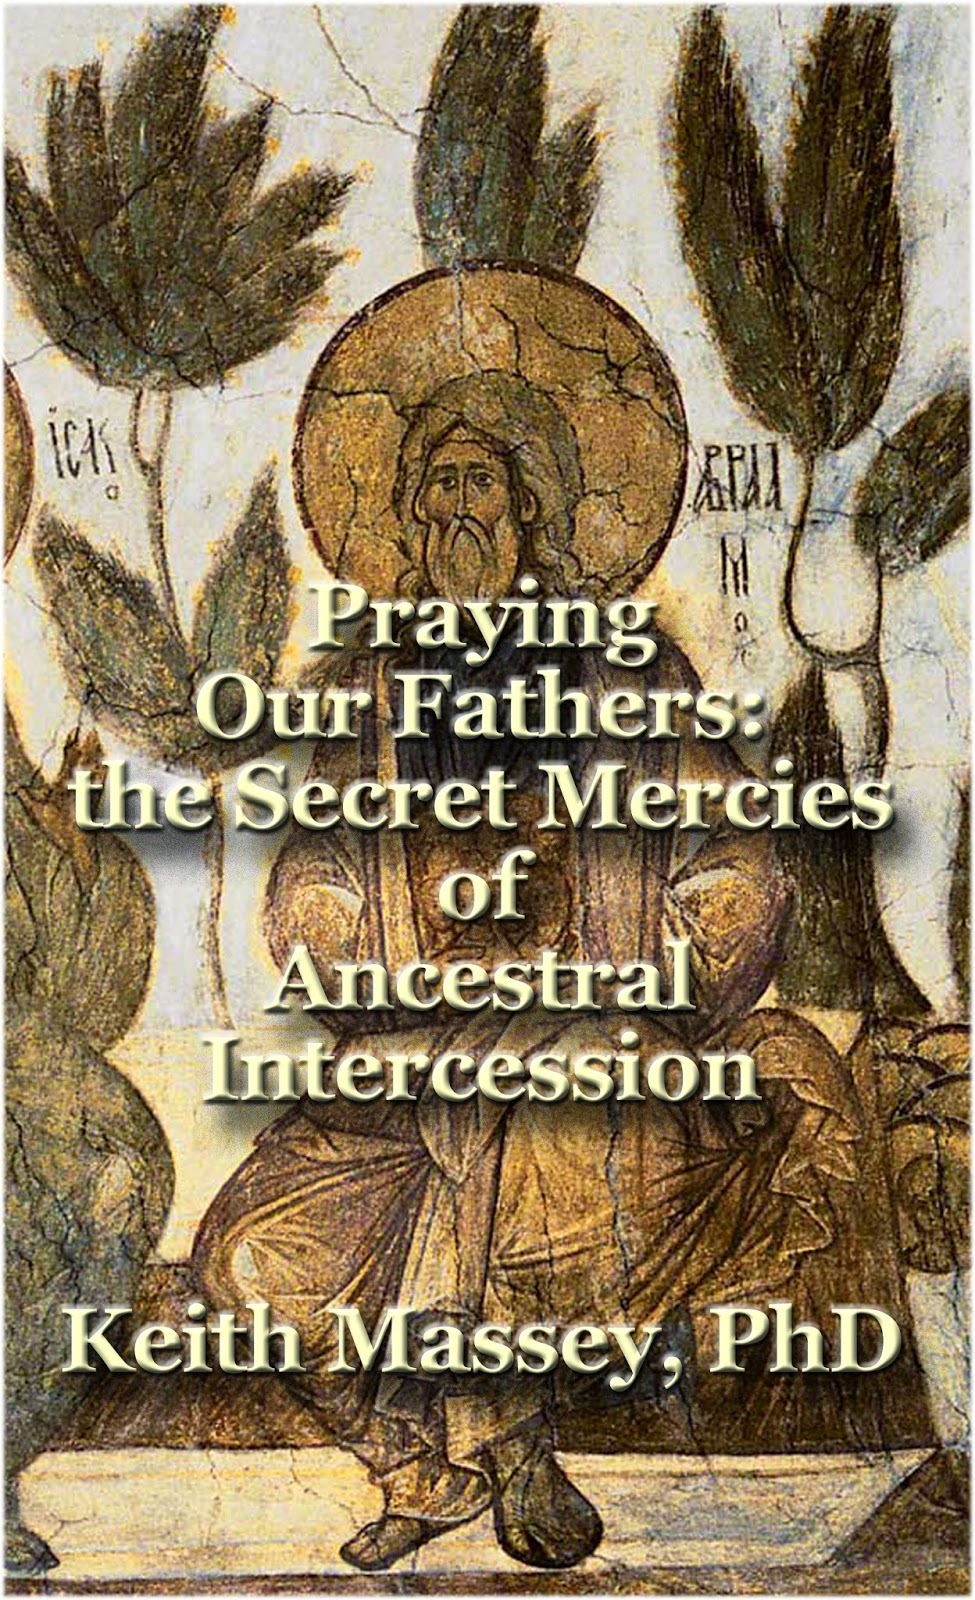 http://www.amazon.com/Praying-Our-Fathers-Ancestral-Intercession-ebook/dp/B00PGJ25AS/ref=sr_1_1?ie=UTF8&qid=1416090908&sr=8-1&keywords=massey+praying+our+fathers